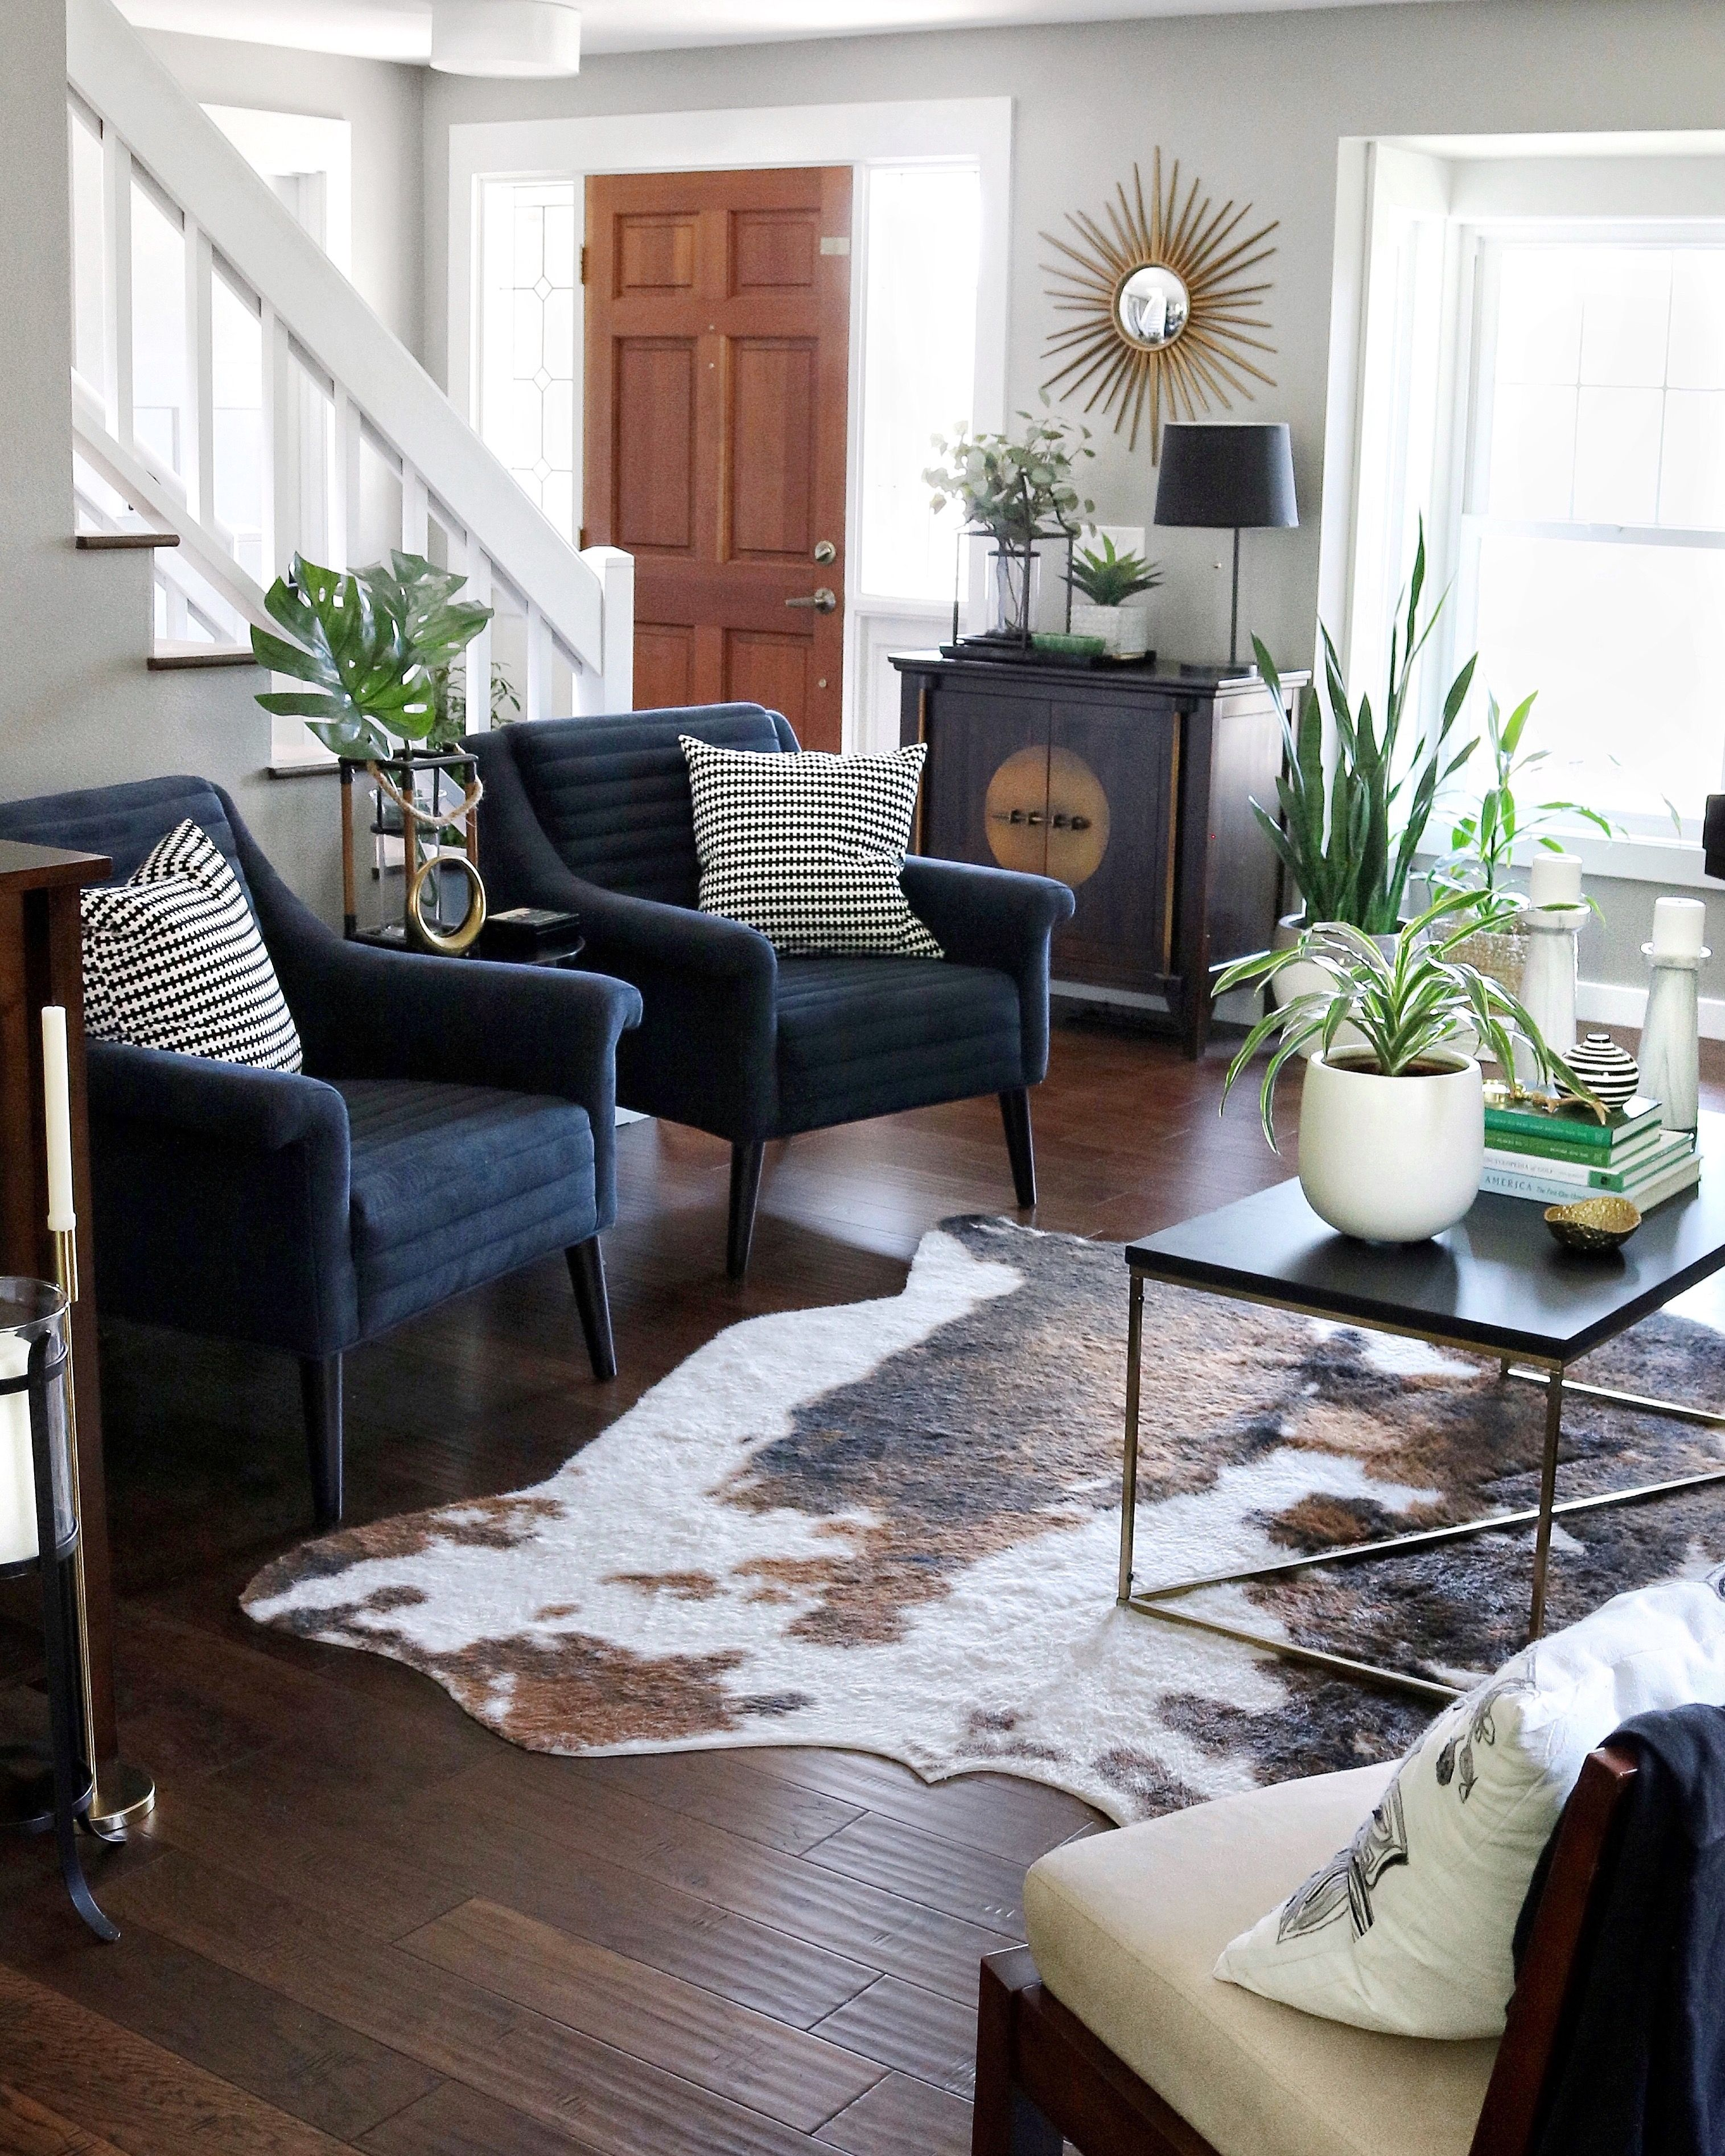 Living Room With Navy Chairs Faux Cowhide Rug Rugs In Living Room Cow Rug Living Room Cowhide Rug Living Room